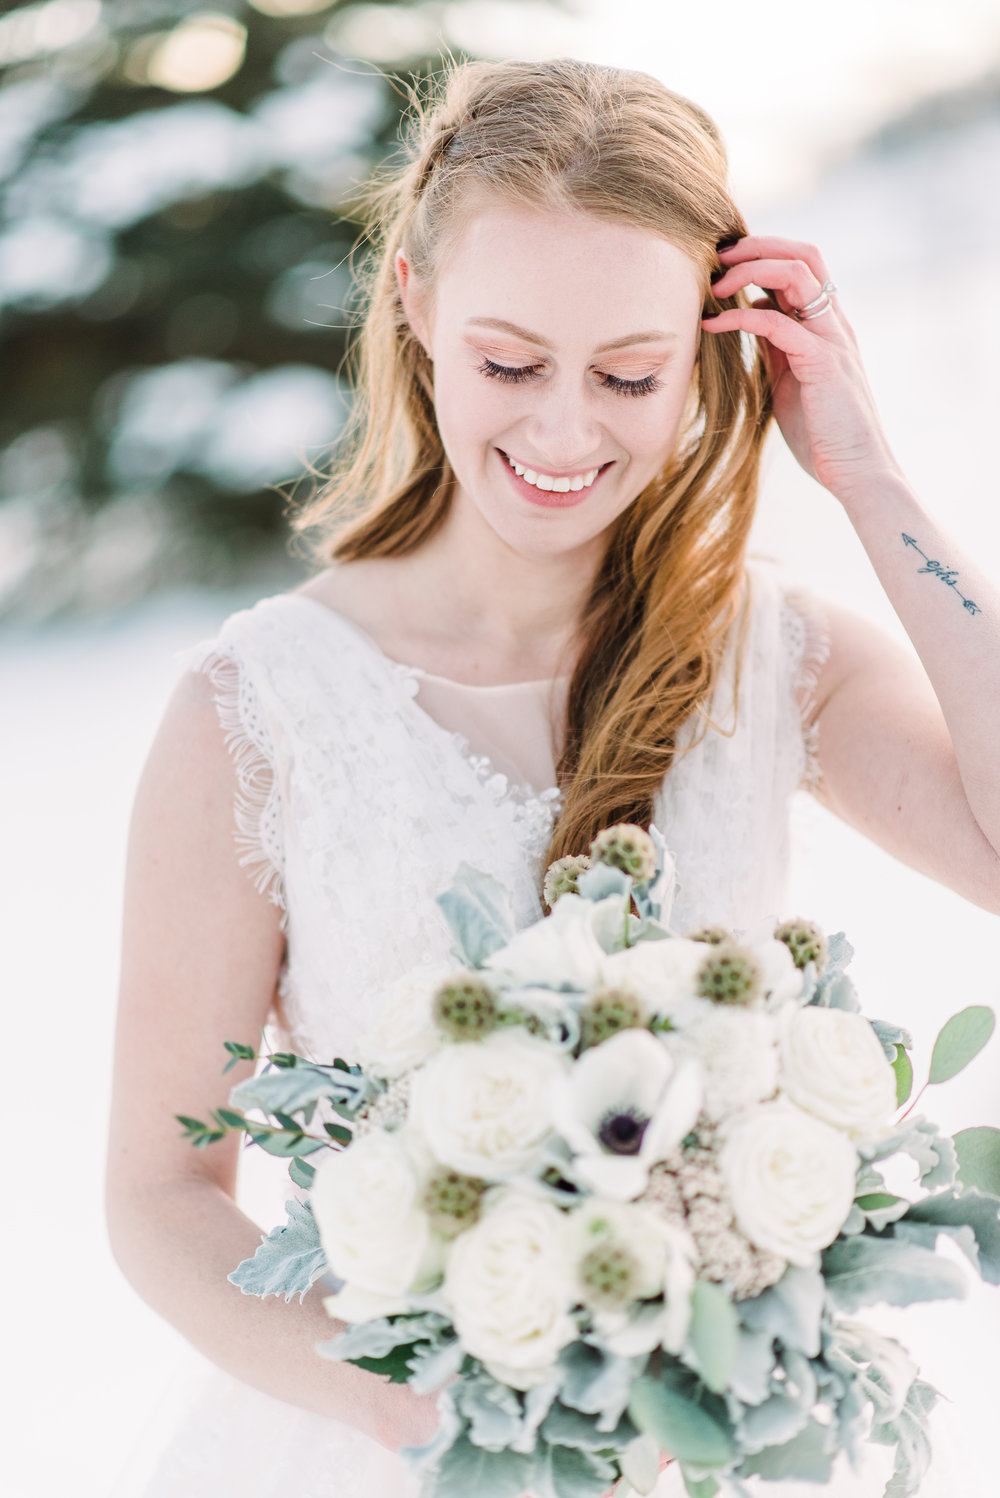 natural hair and makeup for brides brides with tattoo winter outdoor wedding photoshoot